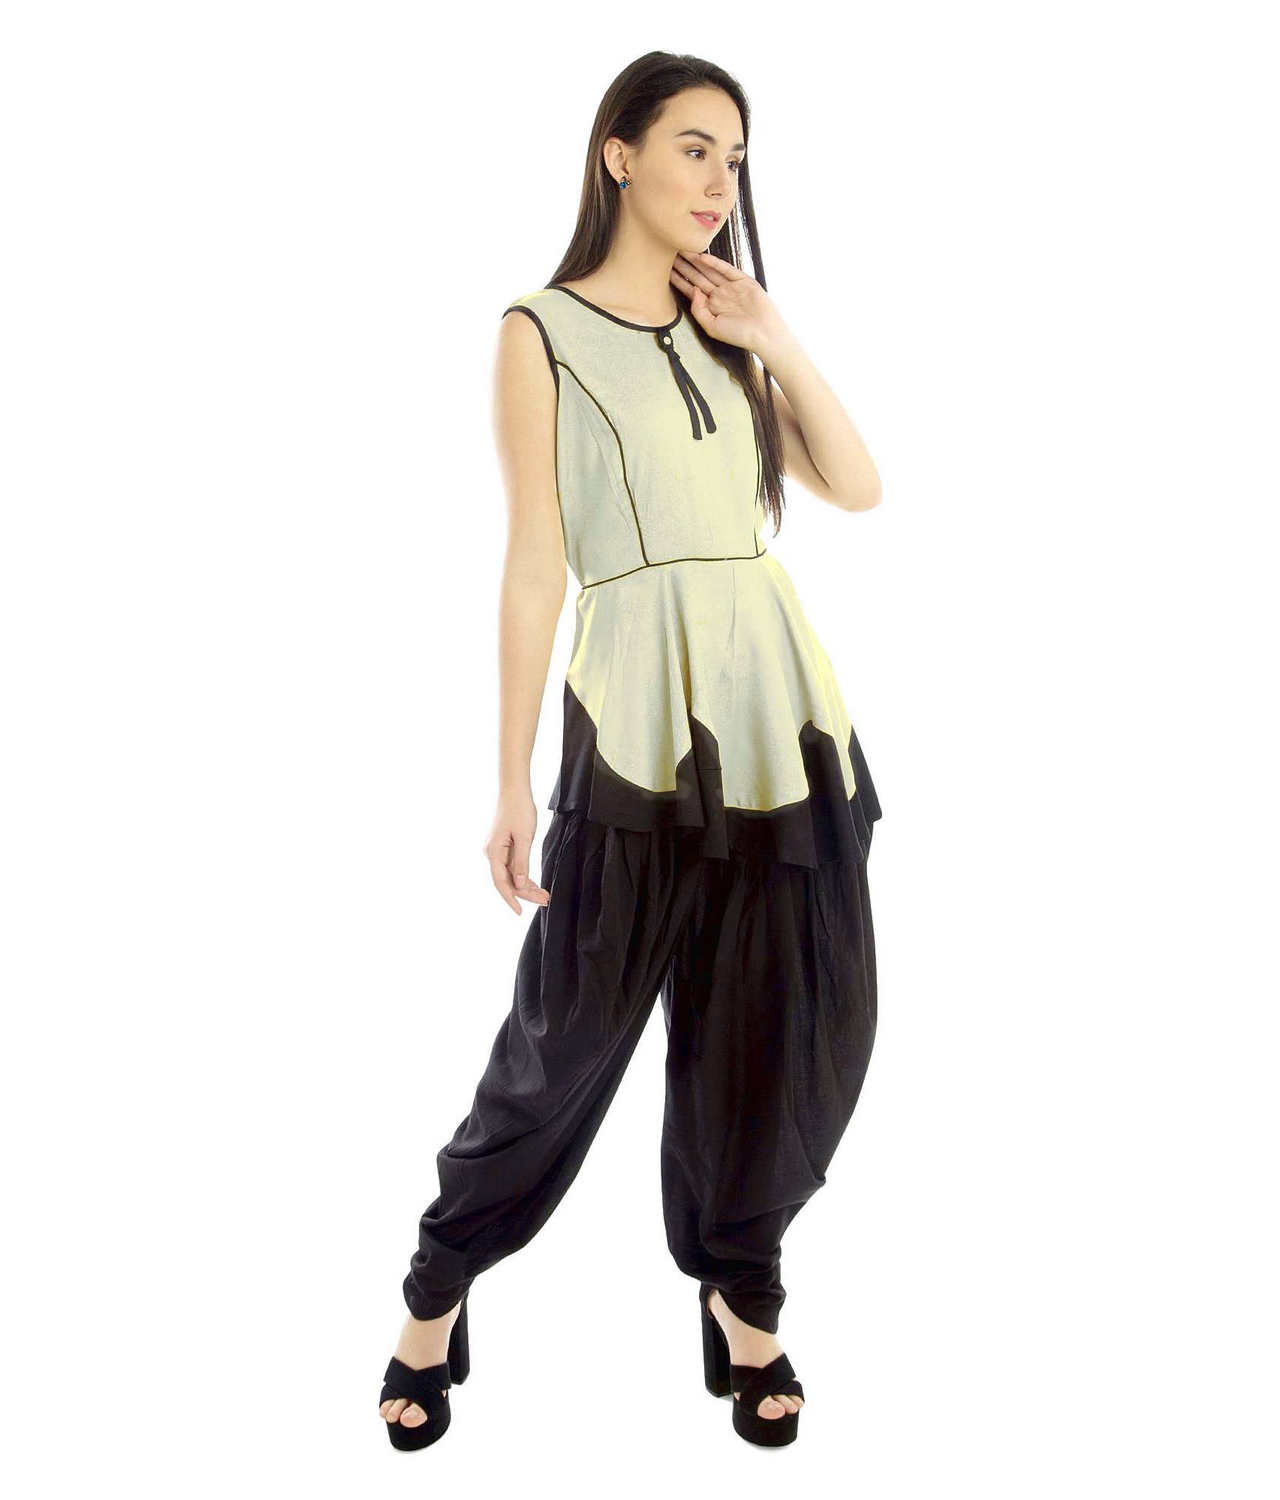 Prince Line Peplum Top in Off-White